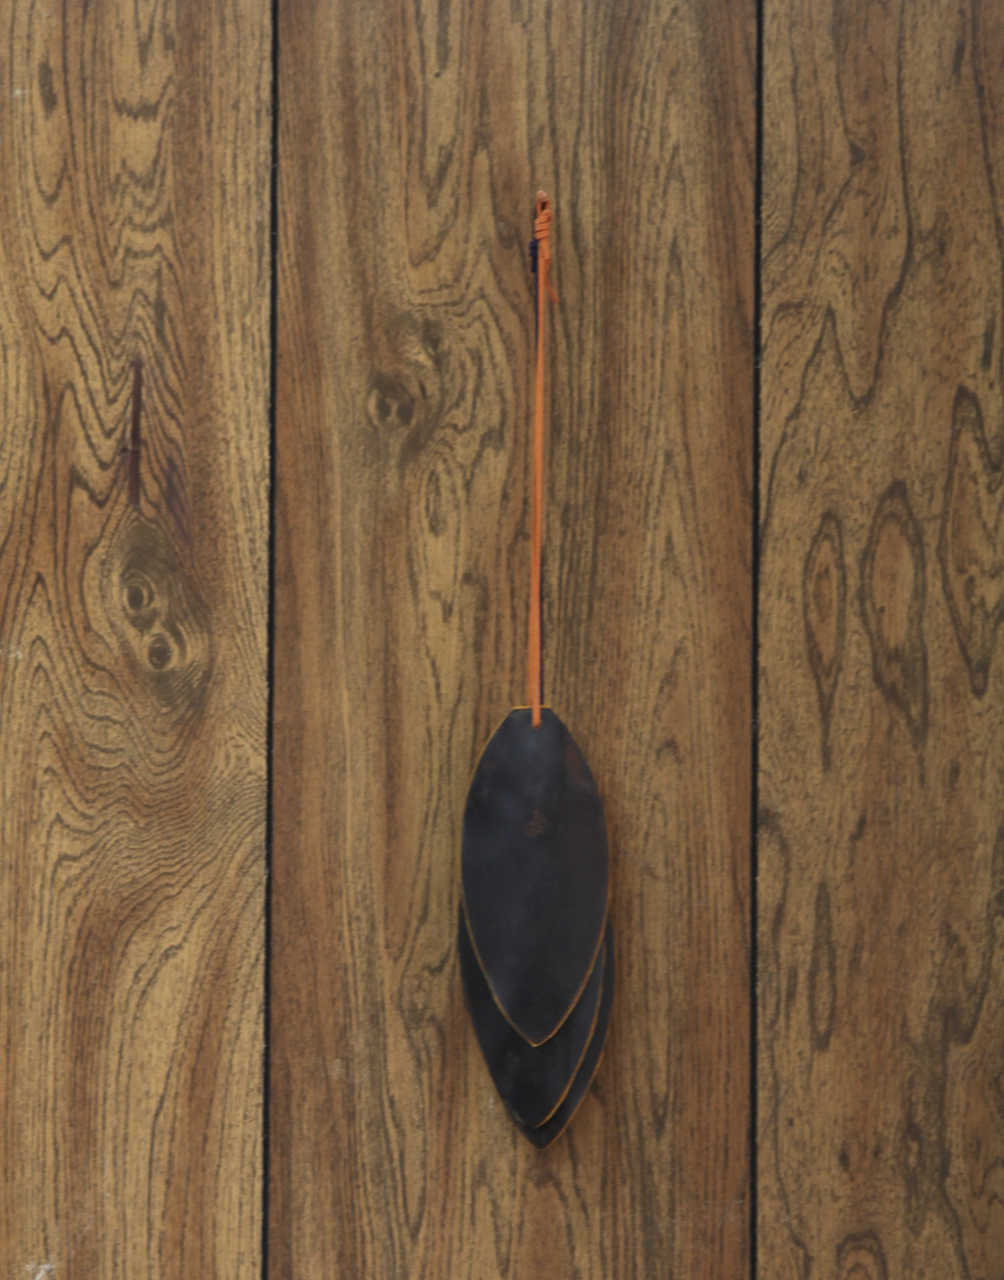 """Llewelyn Fletcher """"Feather shield (for LRAD) patinated steel, felt, leather, wax, copper nail. 2018."""